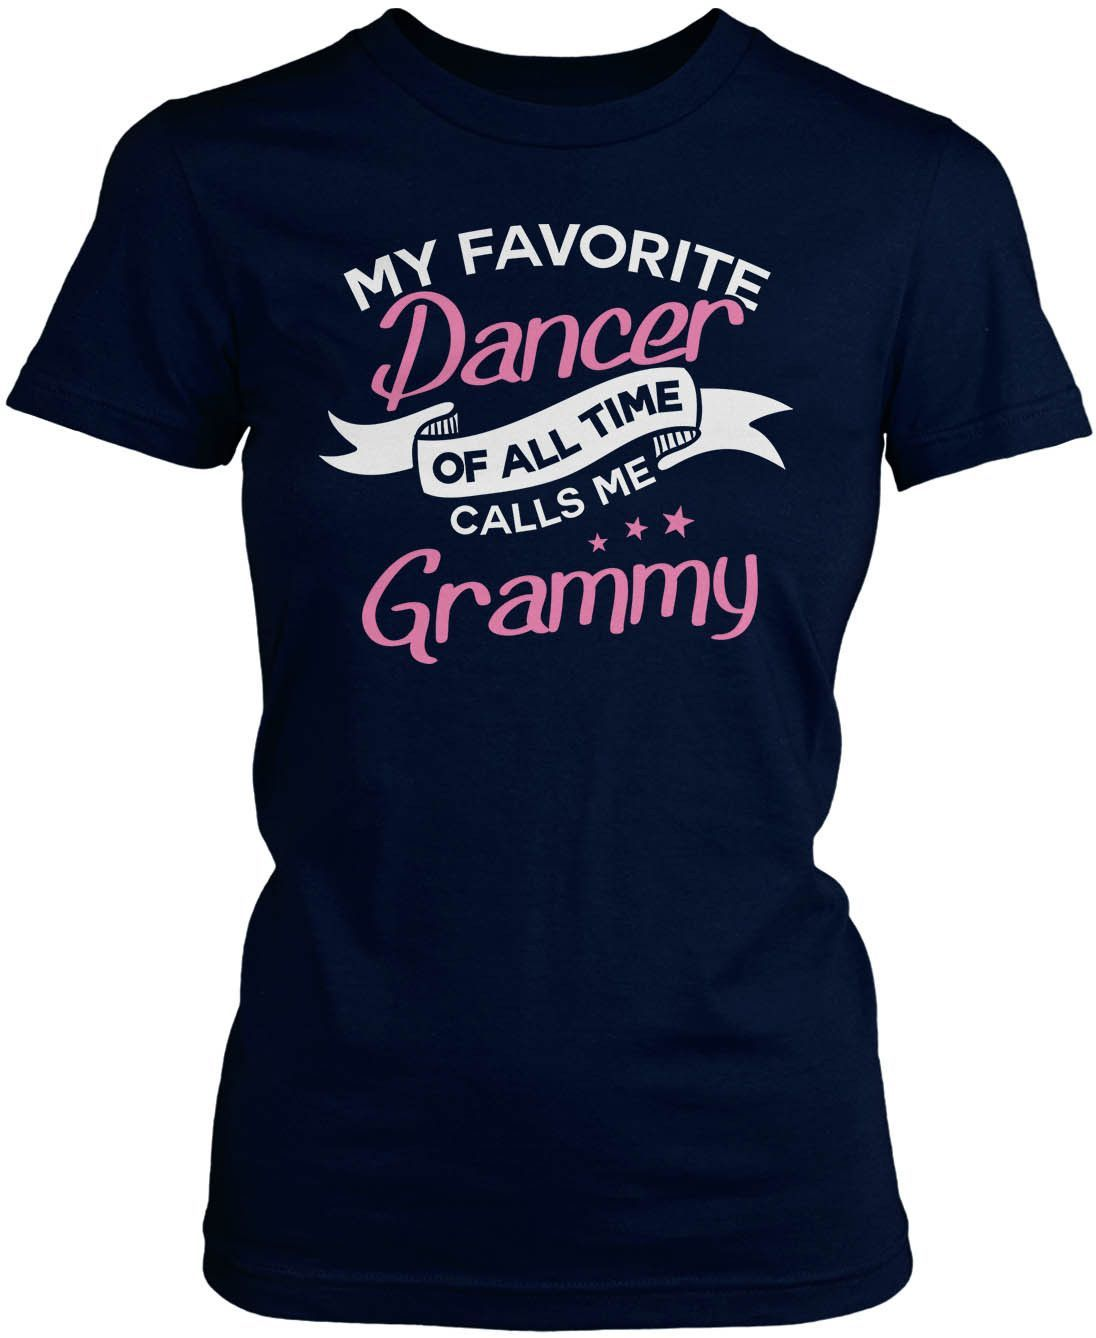 My Favorite Dancer Calls Me Grammy